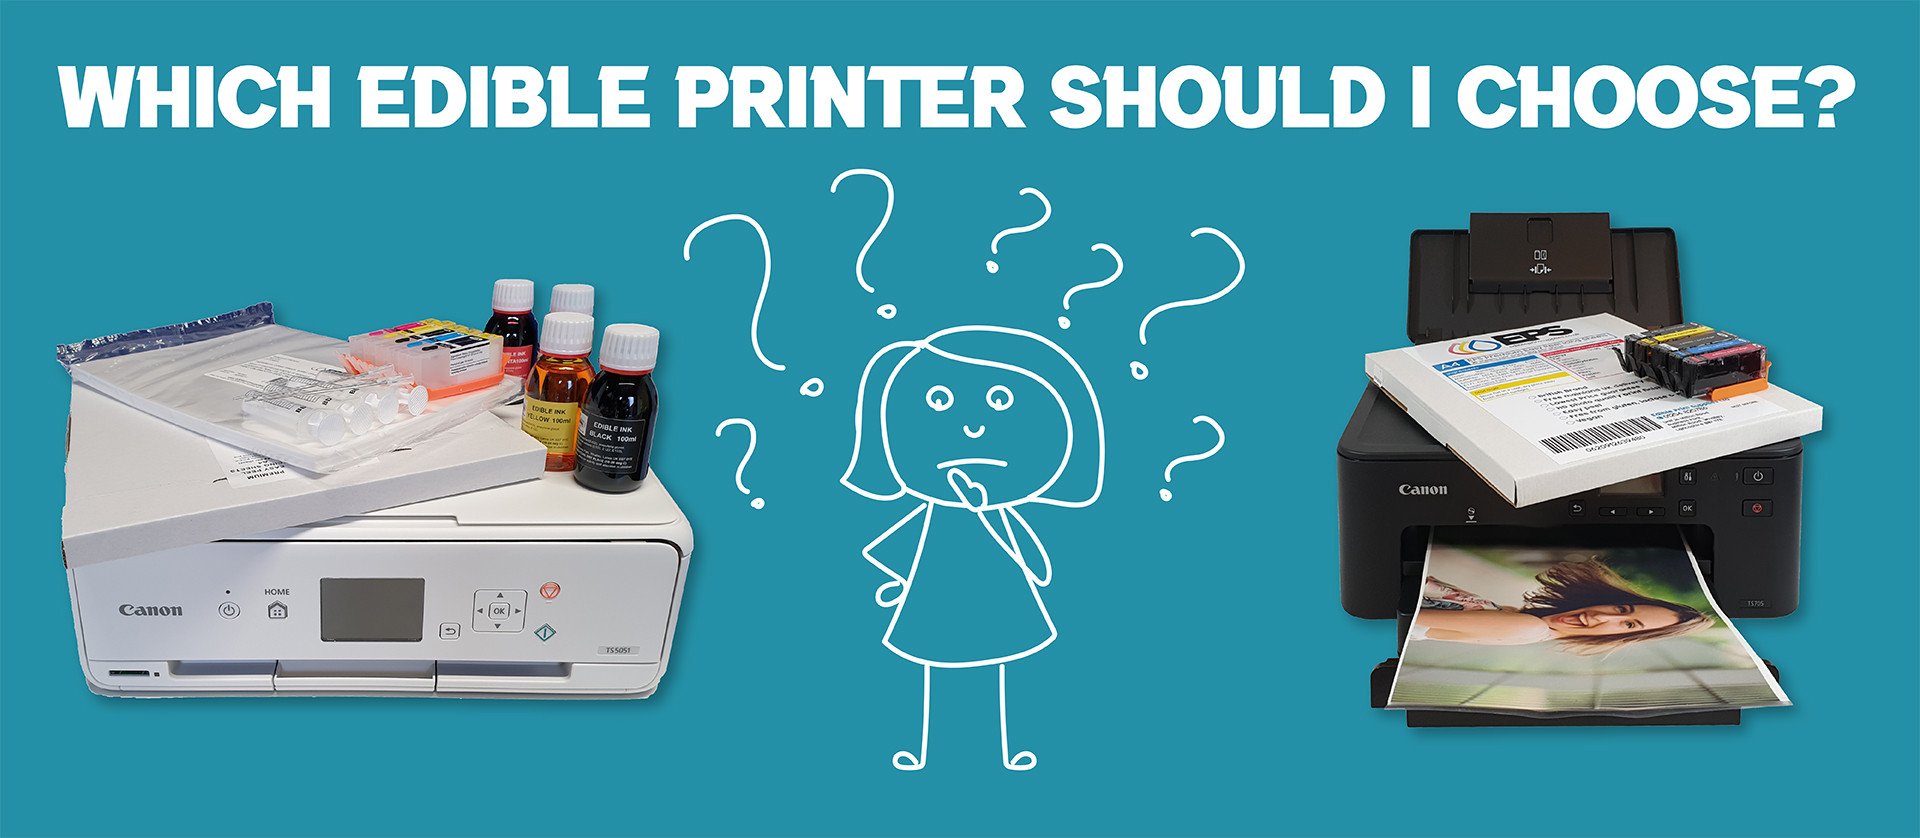 Which Printer Should I Choose